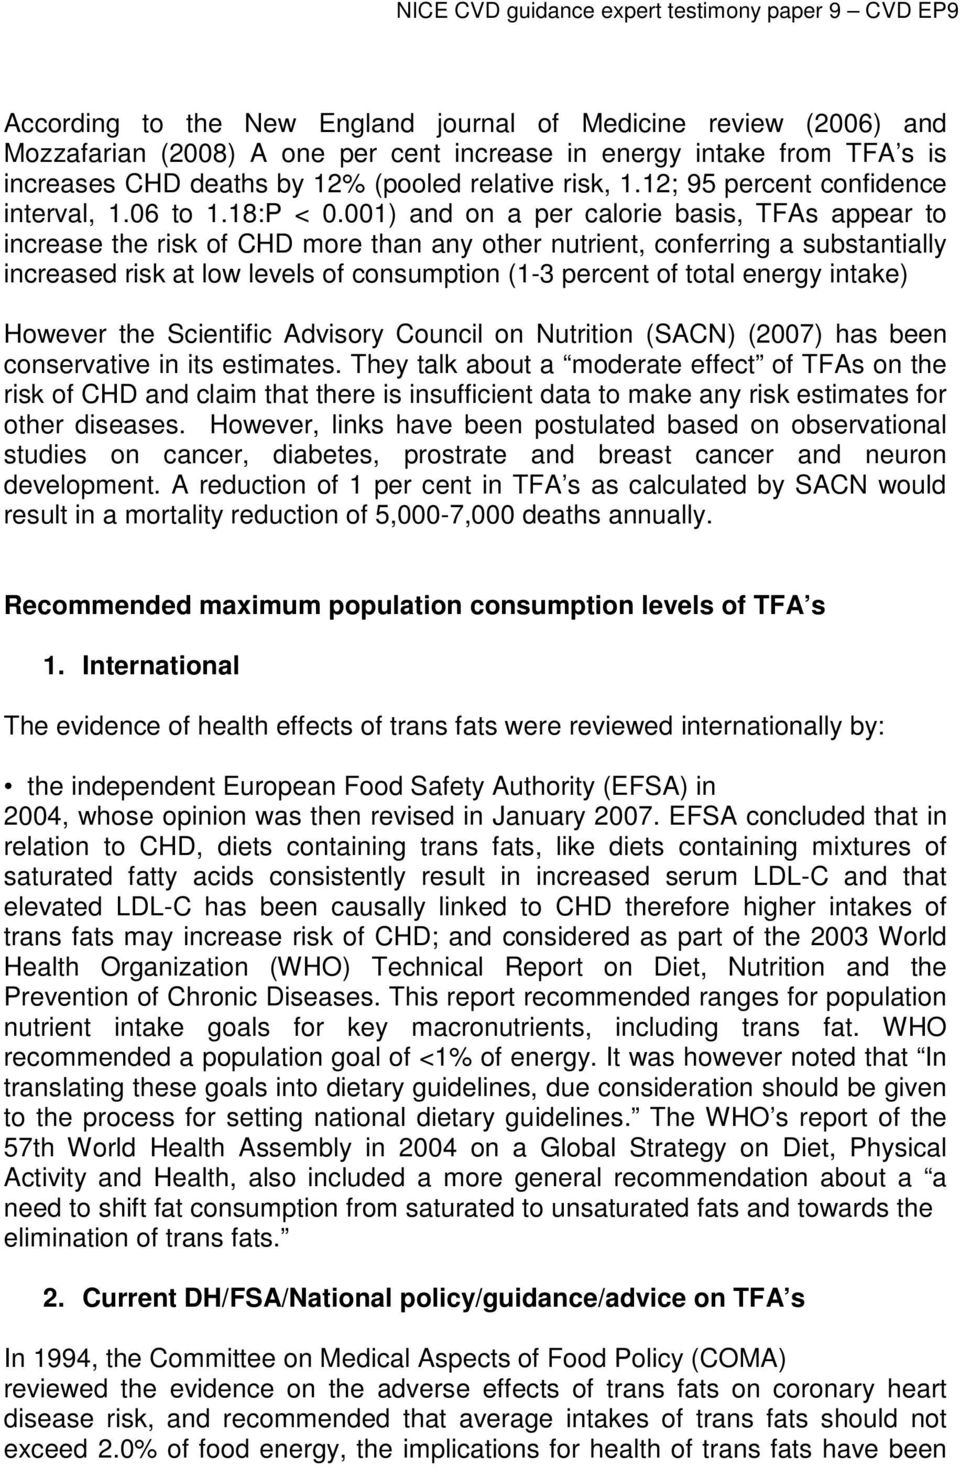 001) and on a per calorie basis, TFAs appear to increase the risk of CHD more than any other nutrient, conferring a substantially increased risk at low levels of consumption (1-3 percent of total